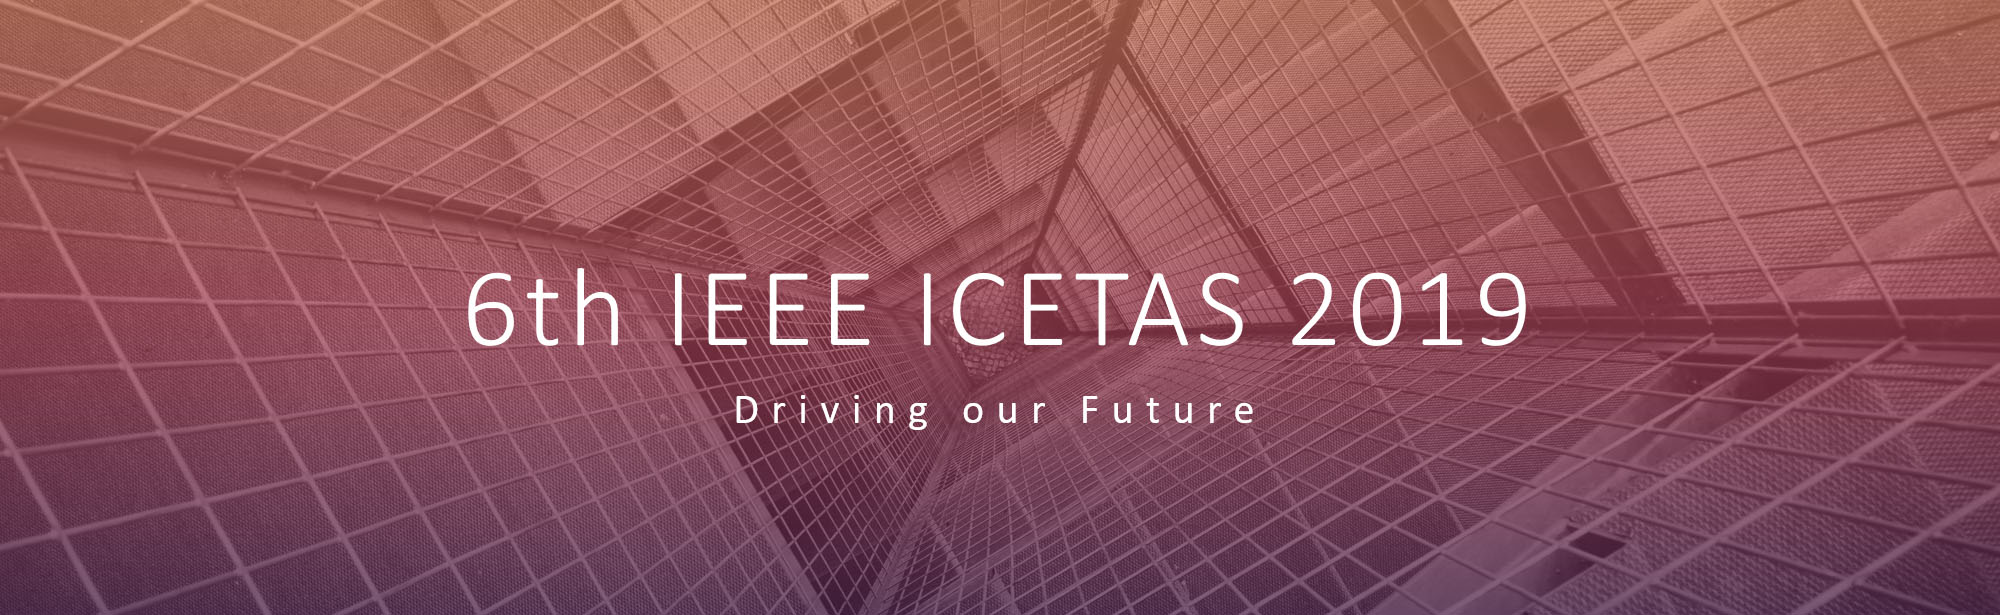 ICETAS 2019 – 6th IEEE Conference